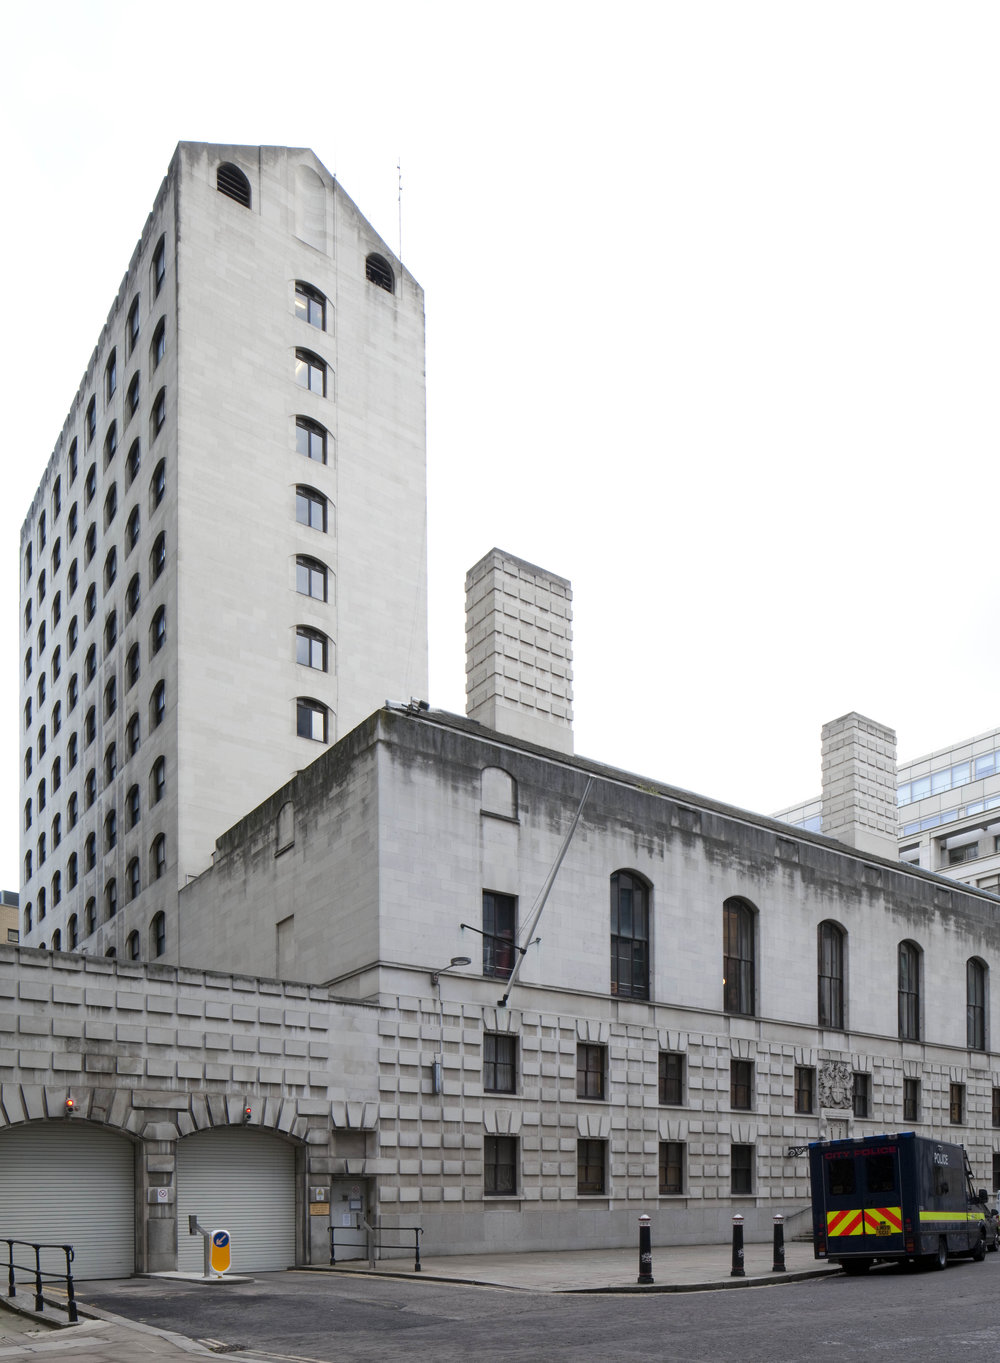 WOOD STREET POLICE STATION - LONDON: McMORRAN & WHITBY